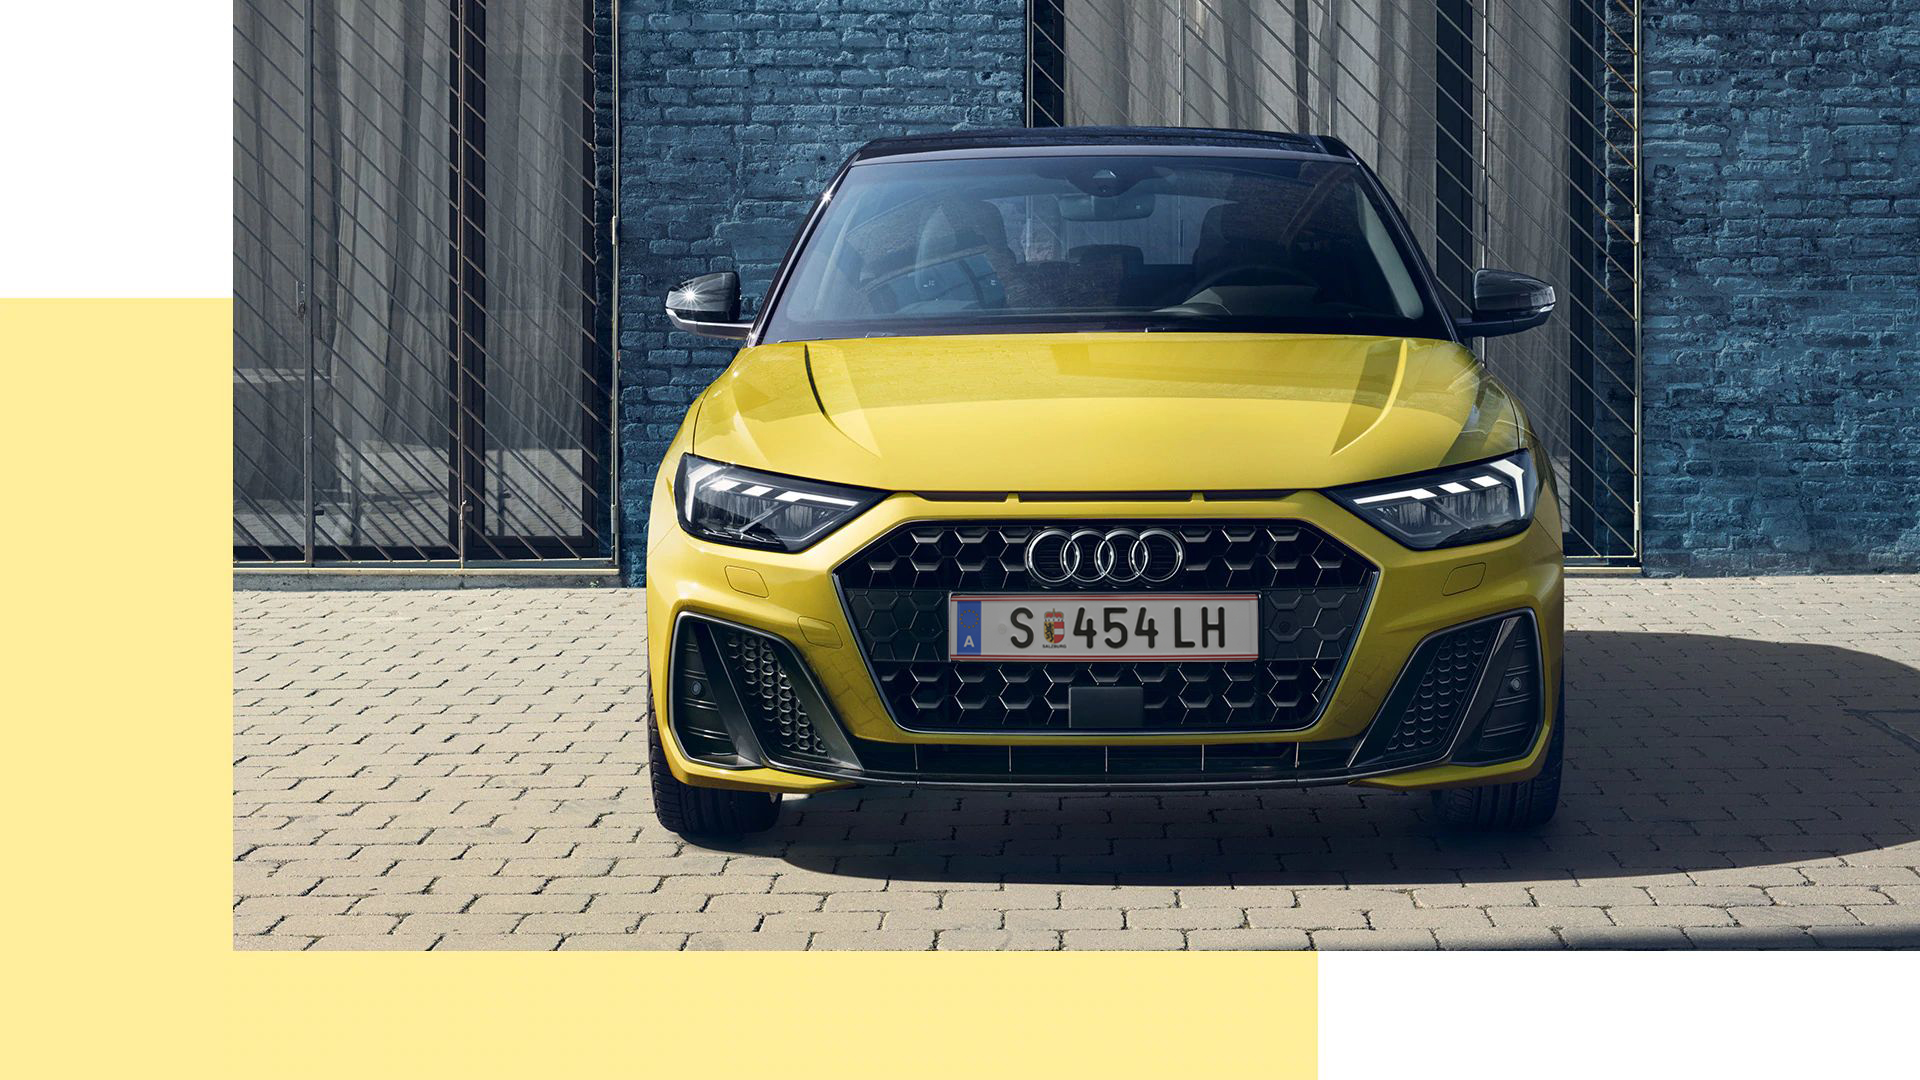 Audi A1 Sportback Frontansicht gelb